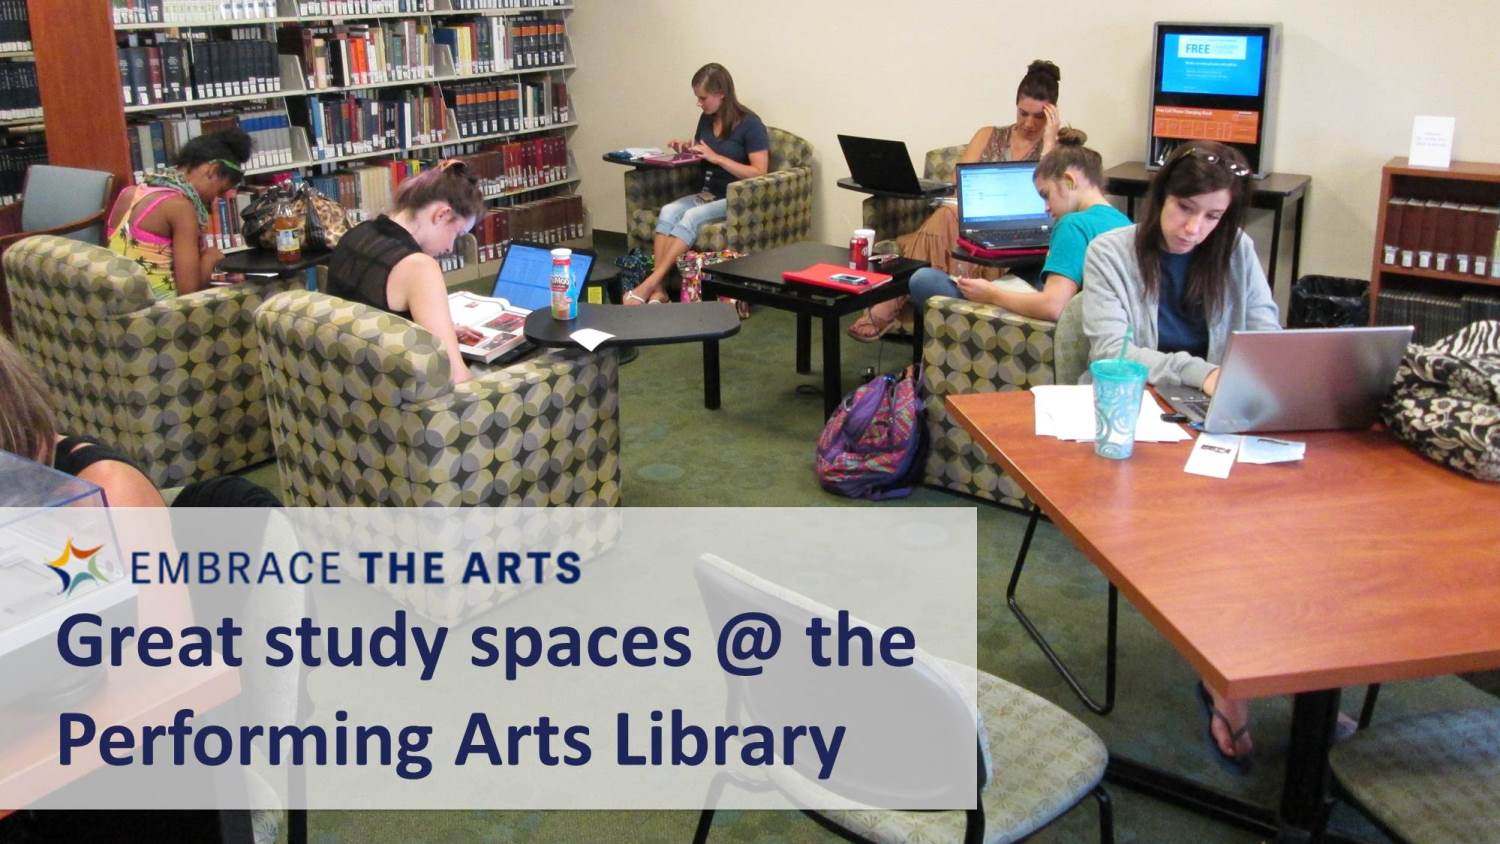 Show more about Study spaces at the Performing Arts Library